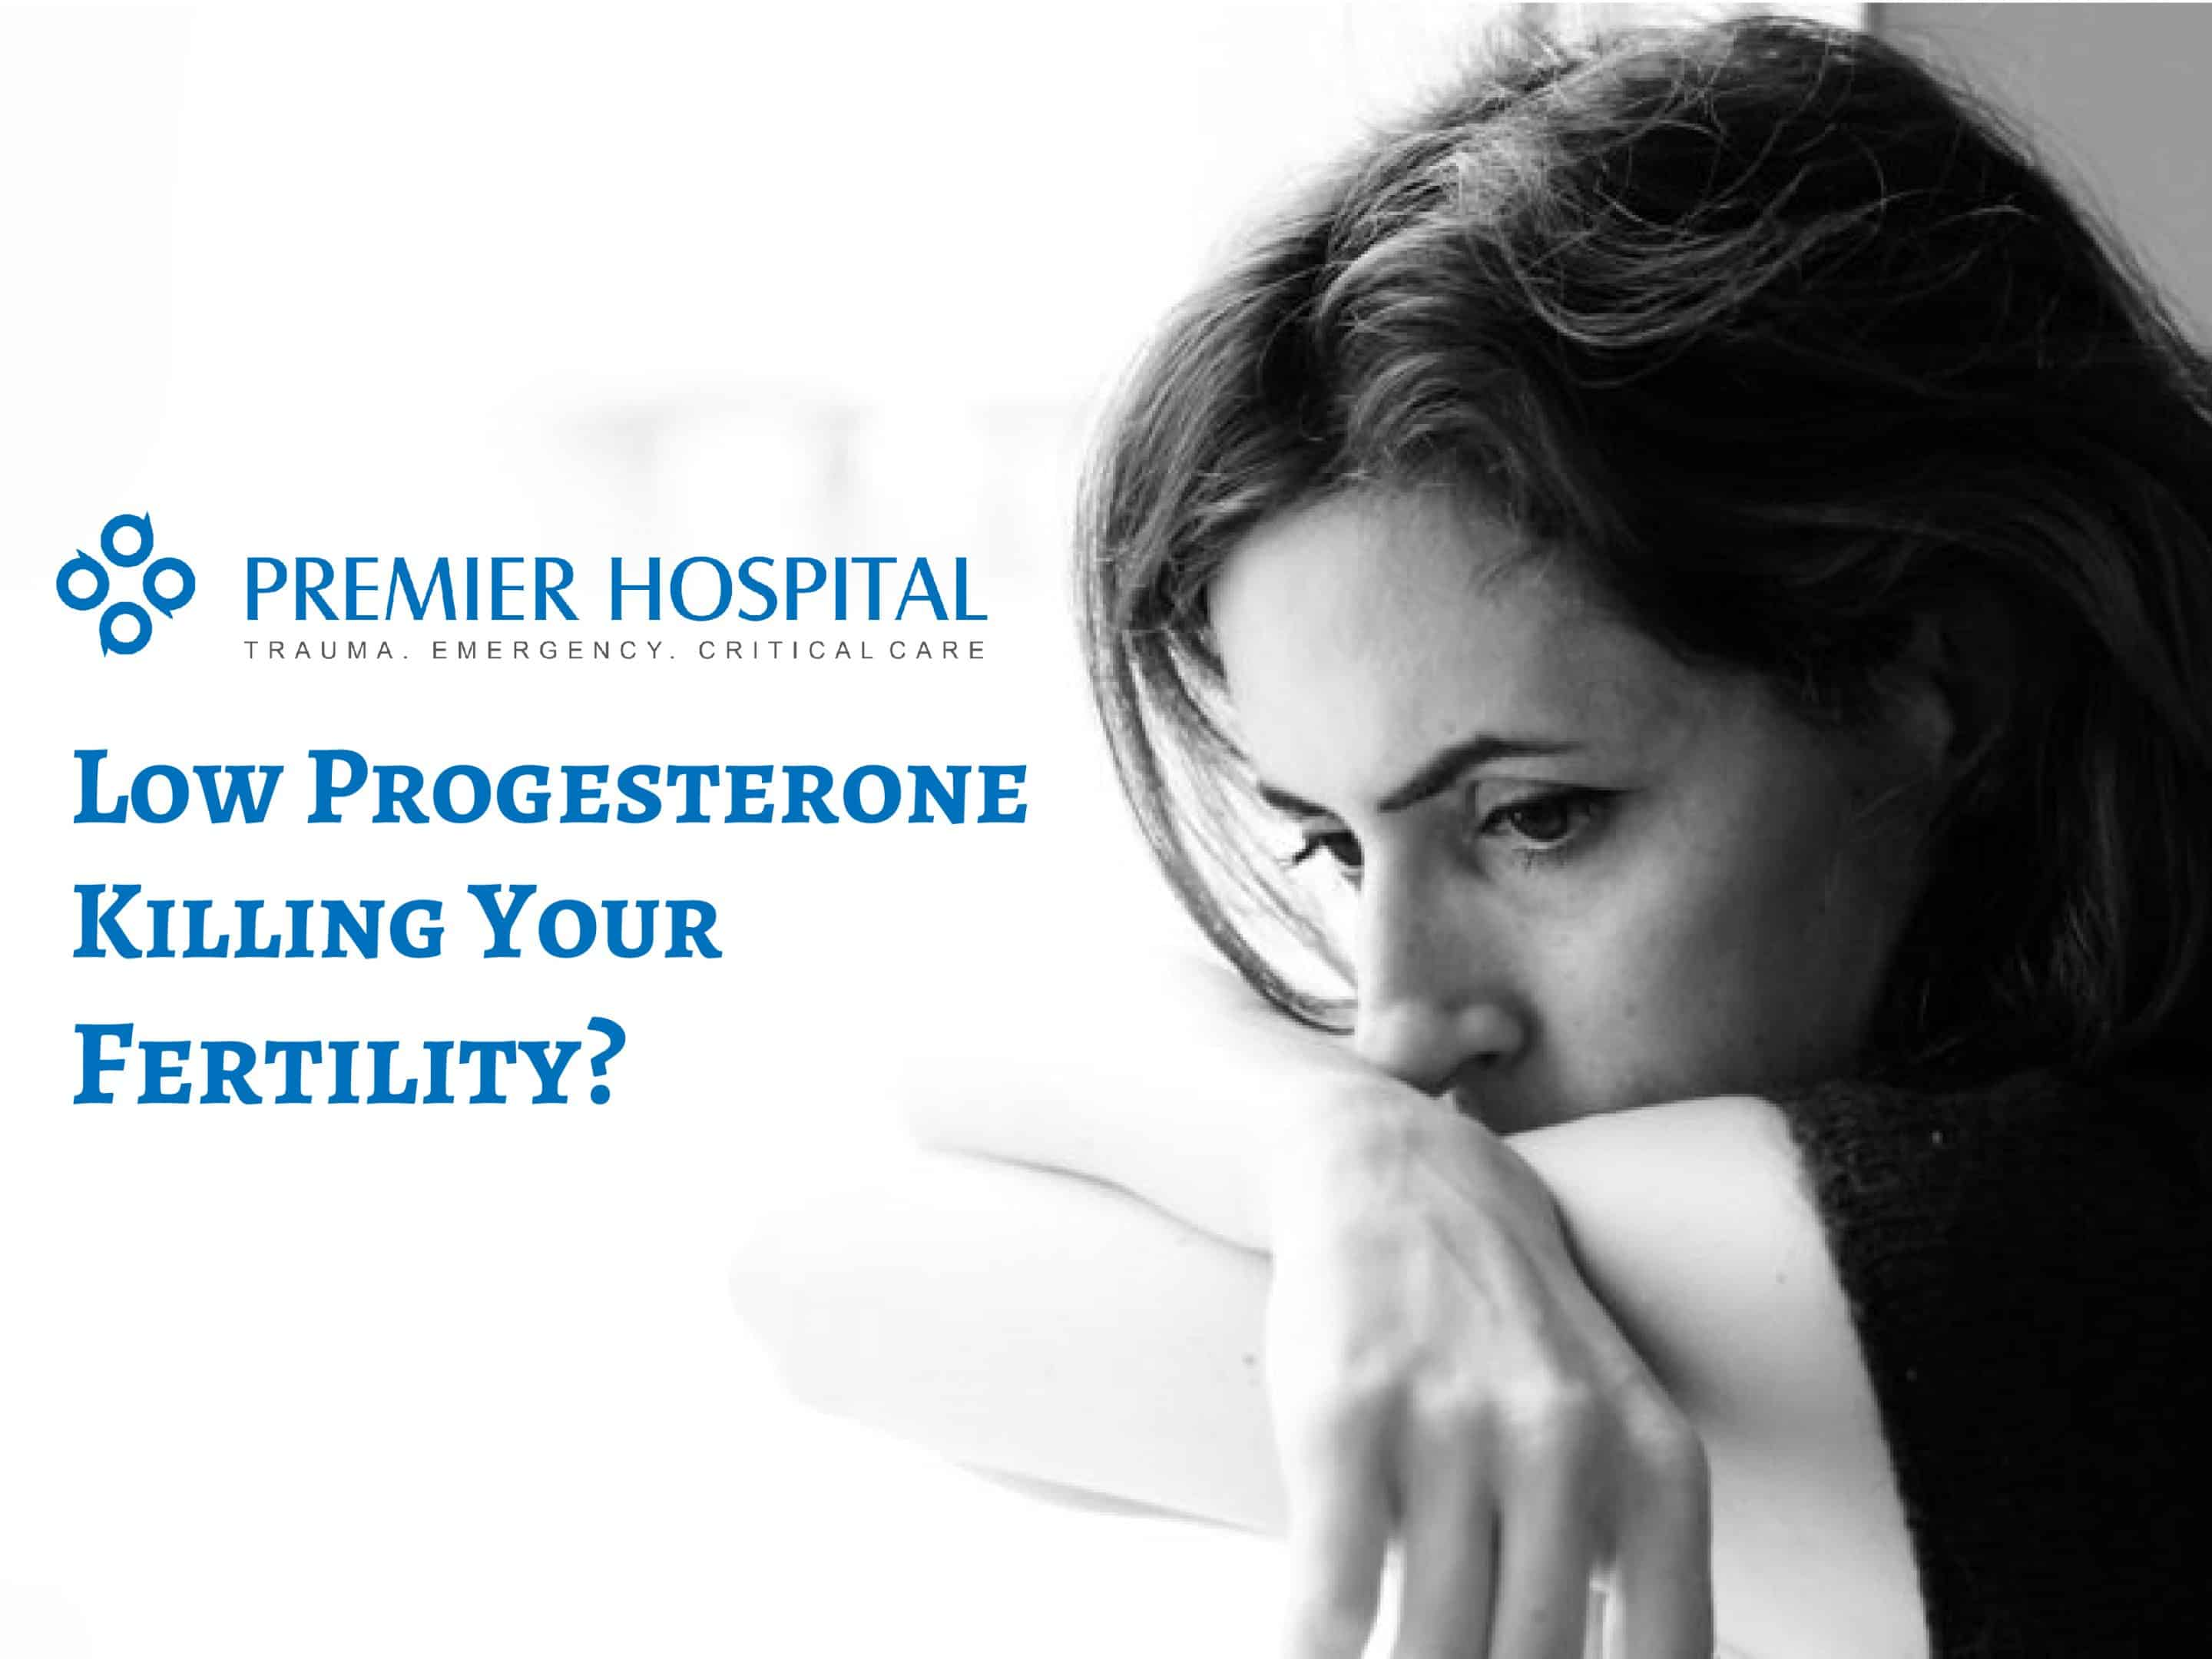 Elevate Your Low Progesterone Level Naturally!